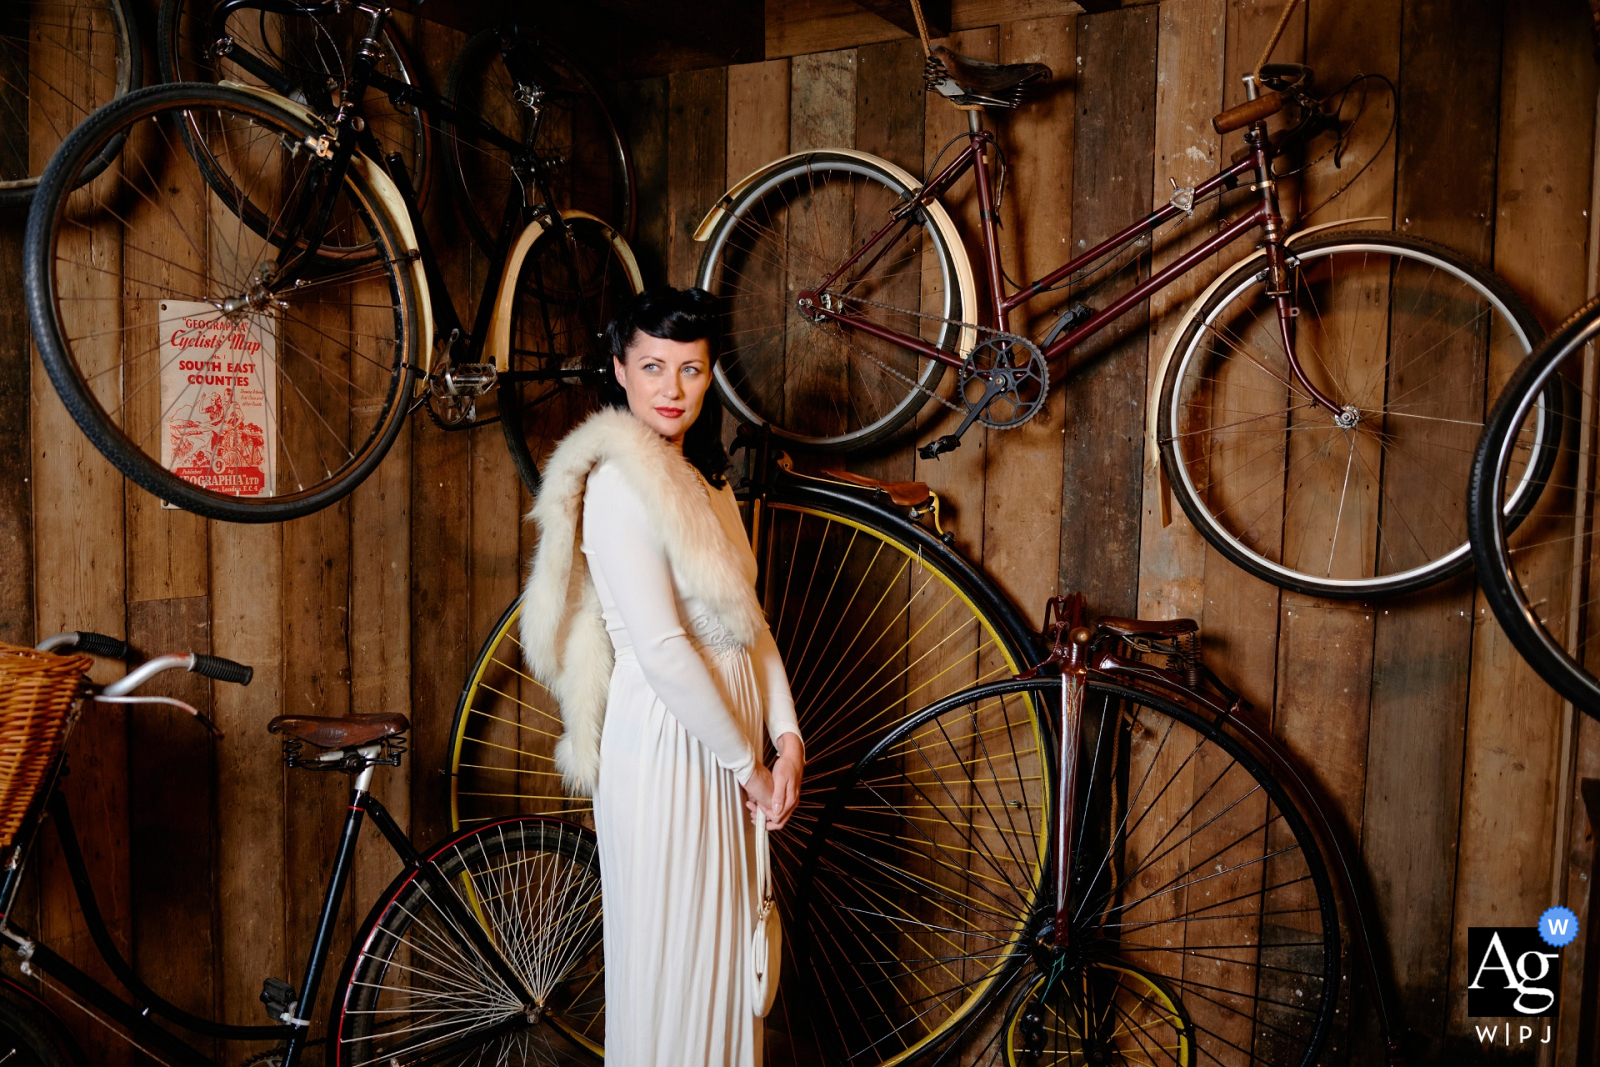 Hampshire, England creative wedding bridal portrait session in warm tones against a wood wall with hanging bikes